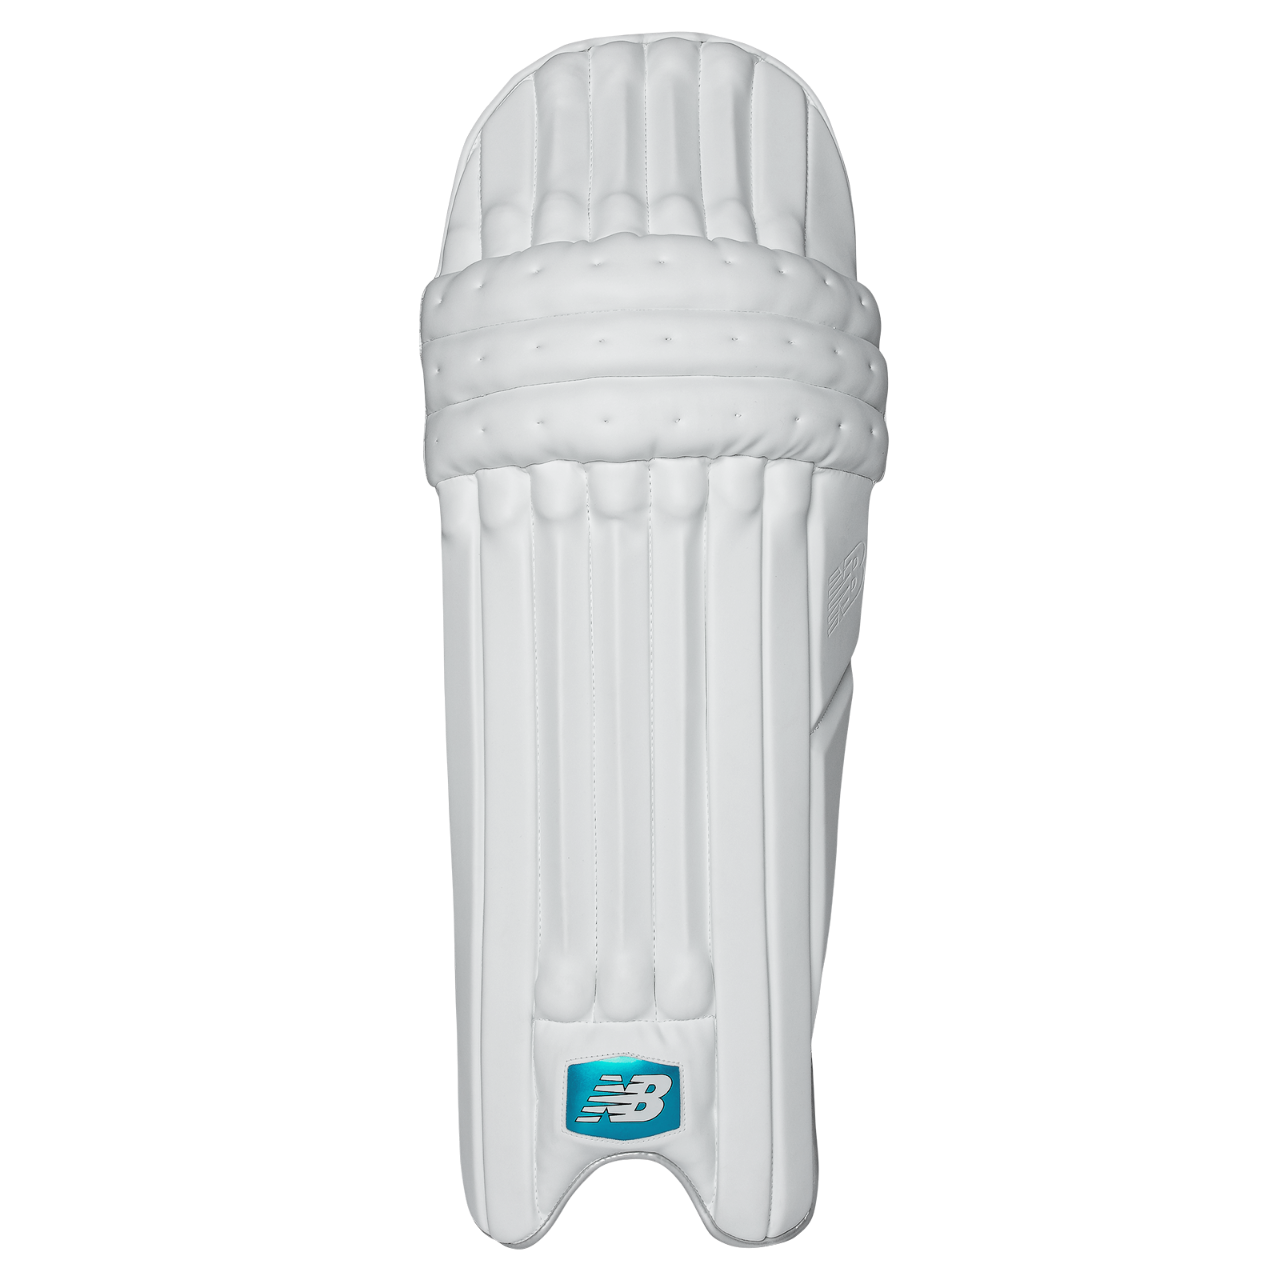 2021 New Balance DC 680 Junior Batting Pads